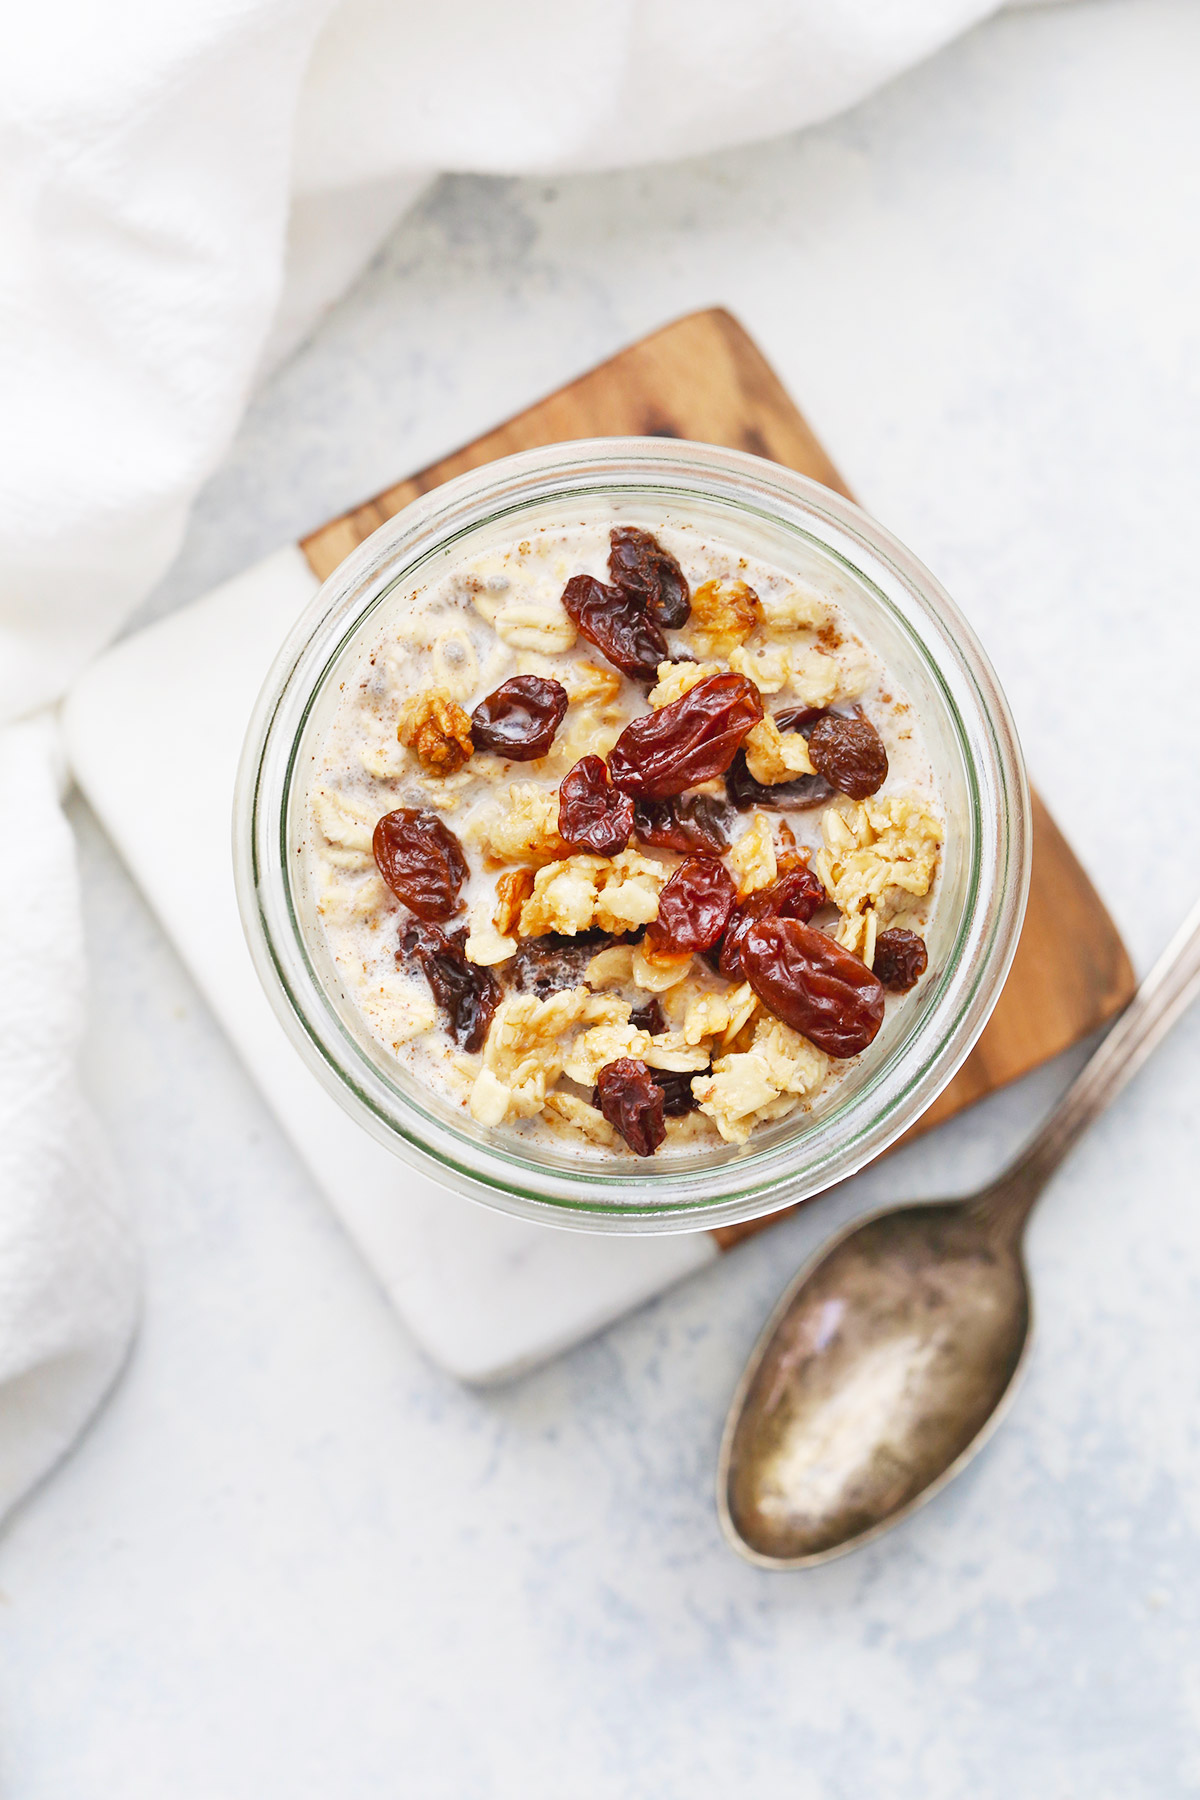 Cinnamon Raisin Overnight Oats from One Lovely Life